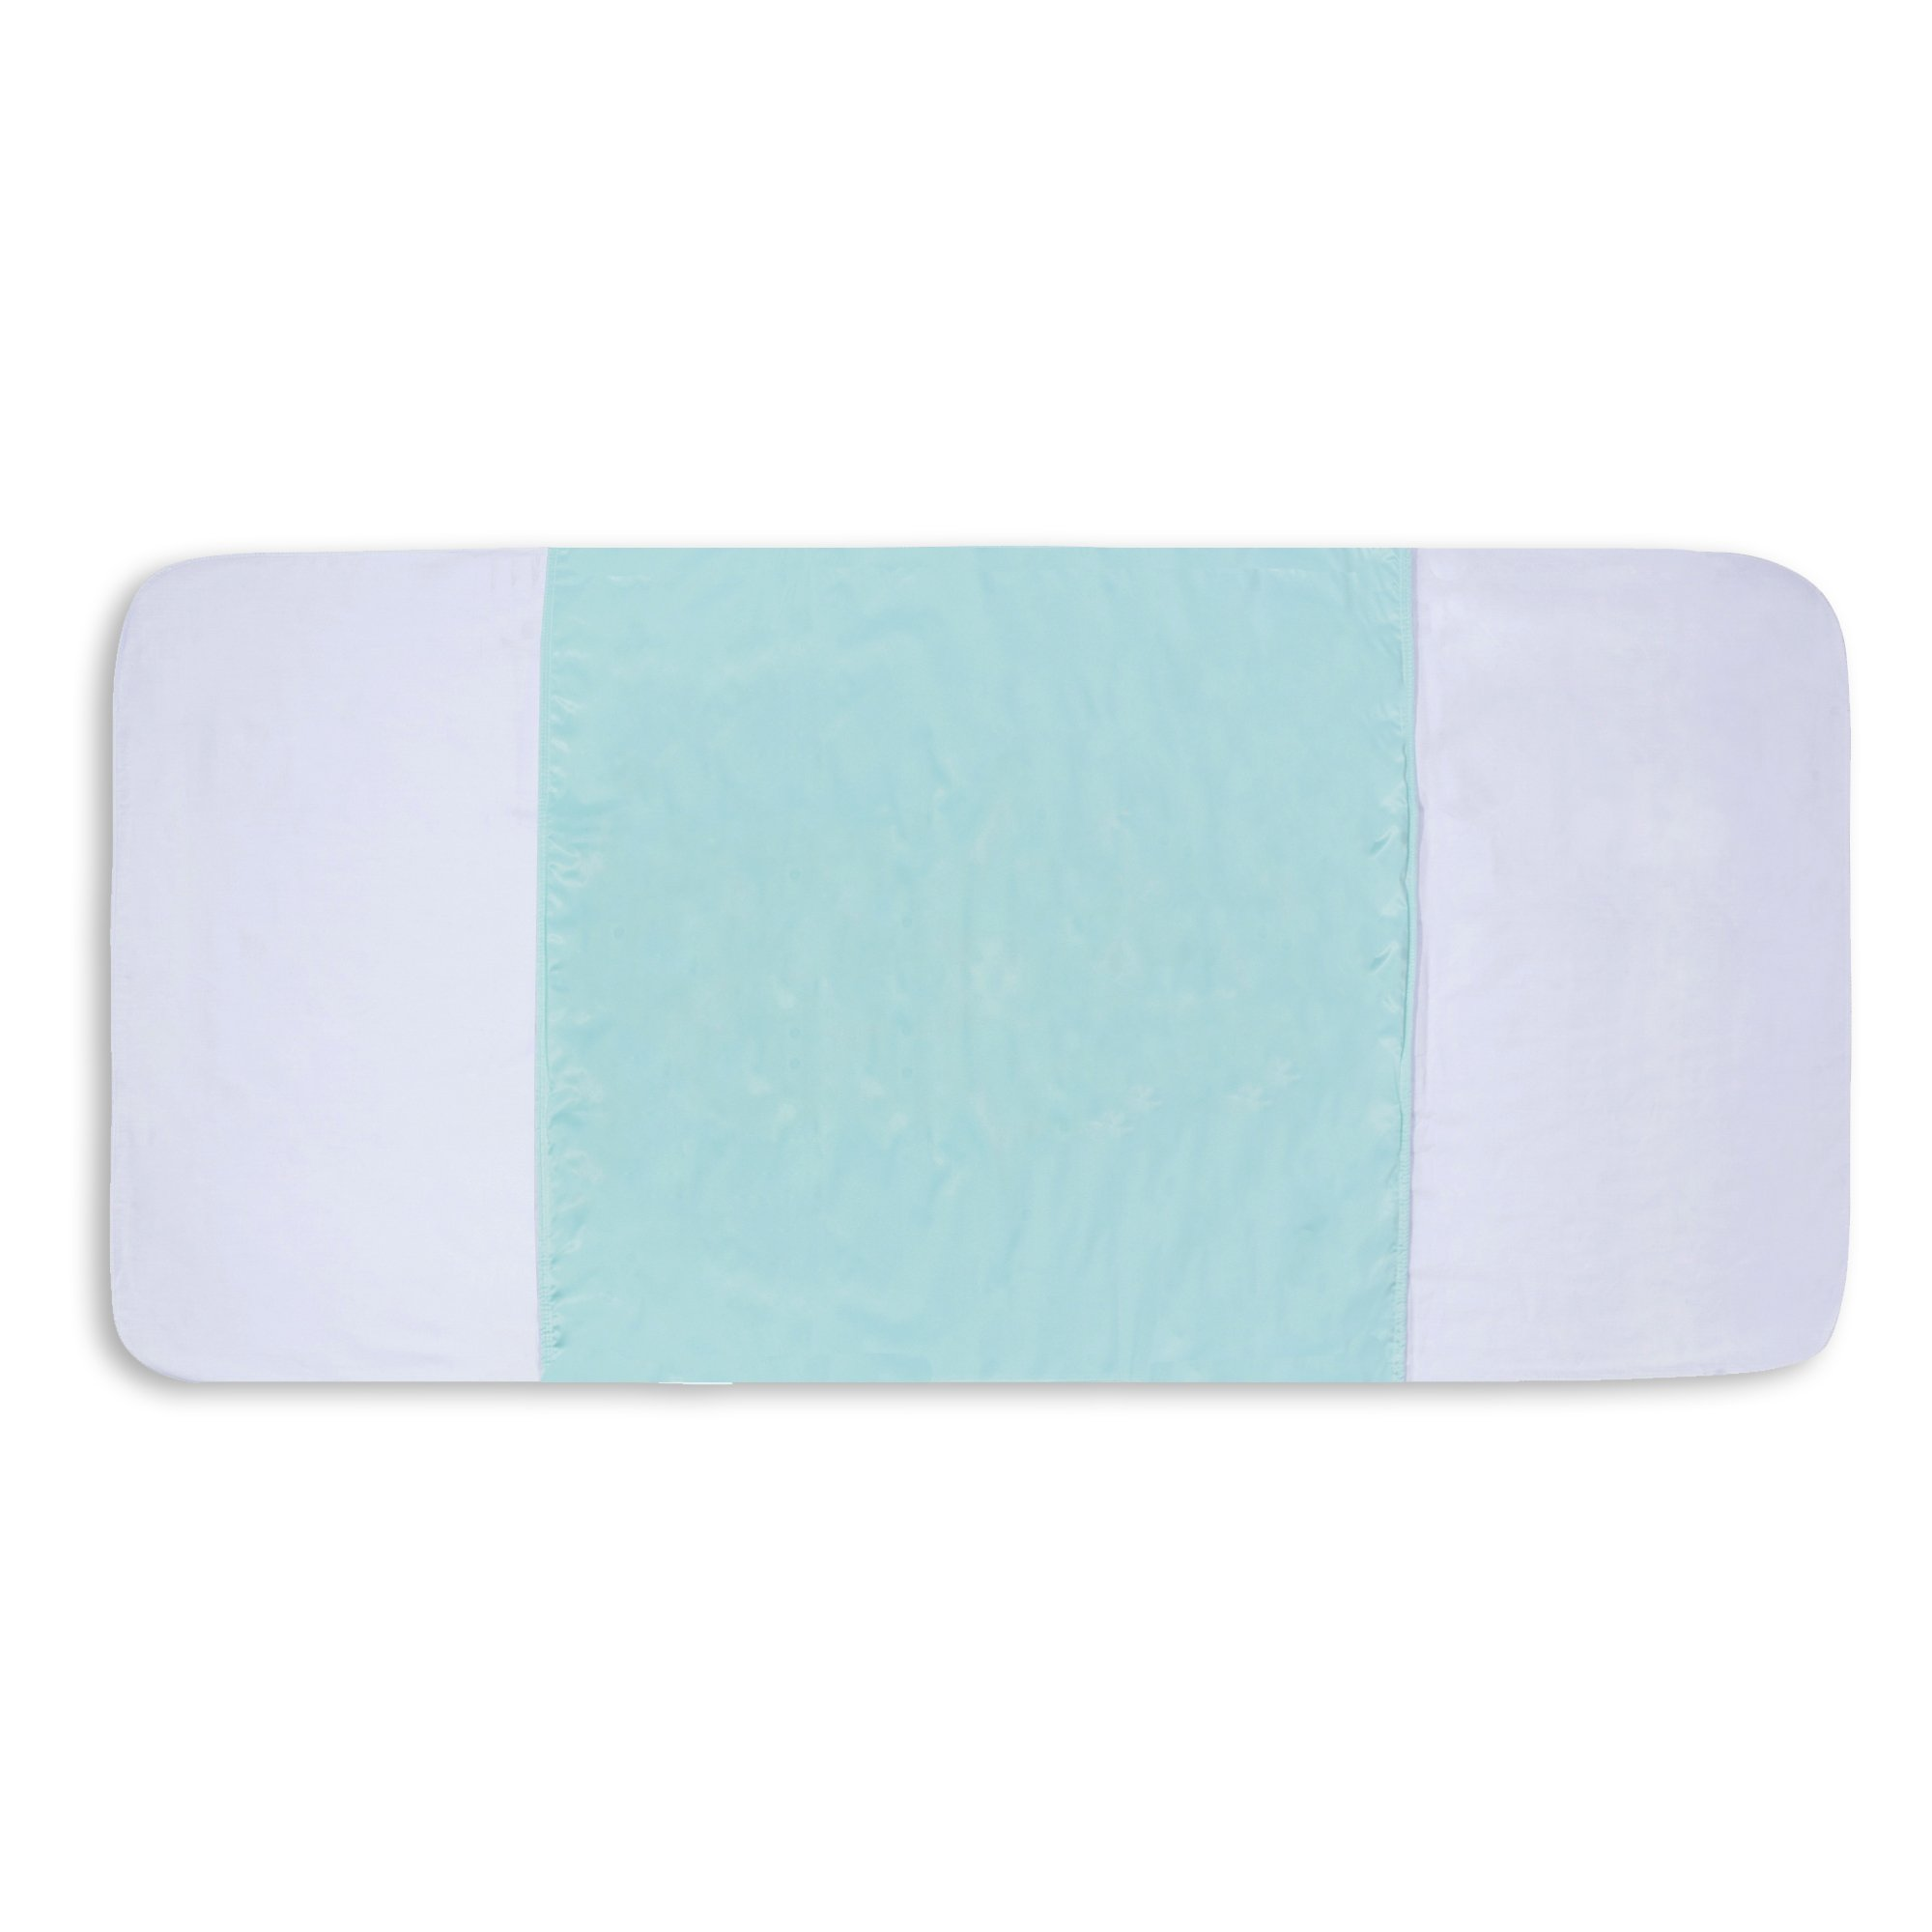 Saddle Style Reusable Waterproof Bed Pad - Will Absorb 10 Cups of Liquid - Made in America (34'' X 36'')